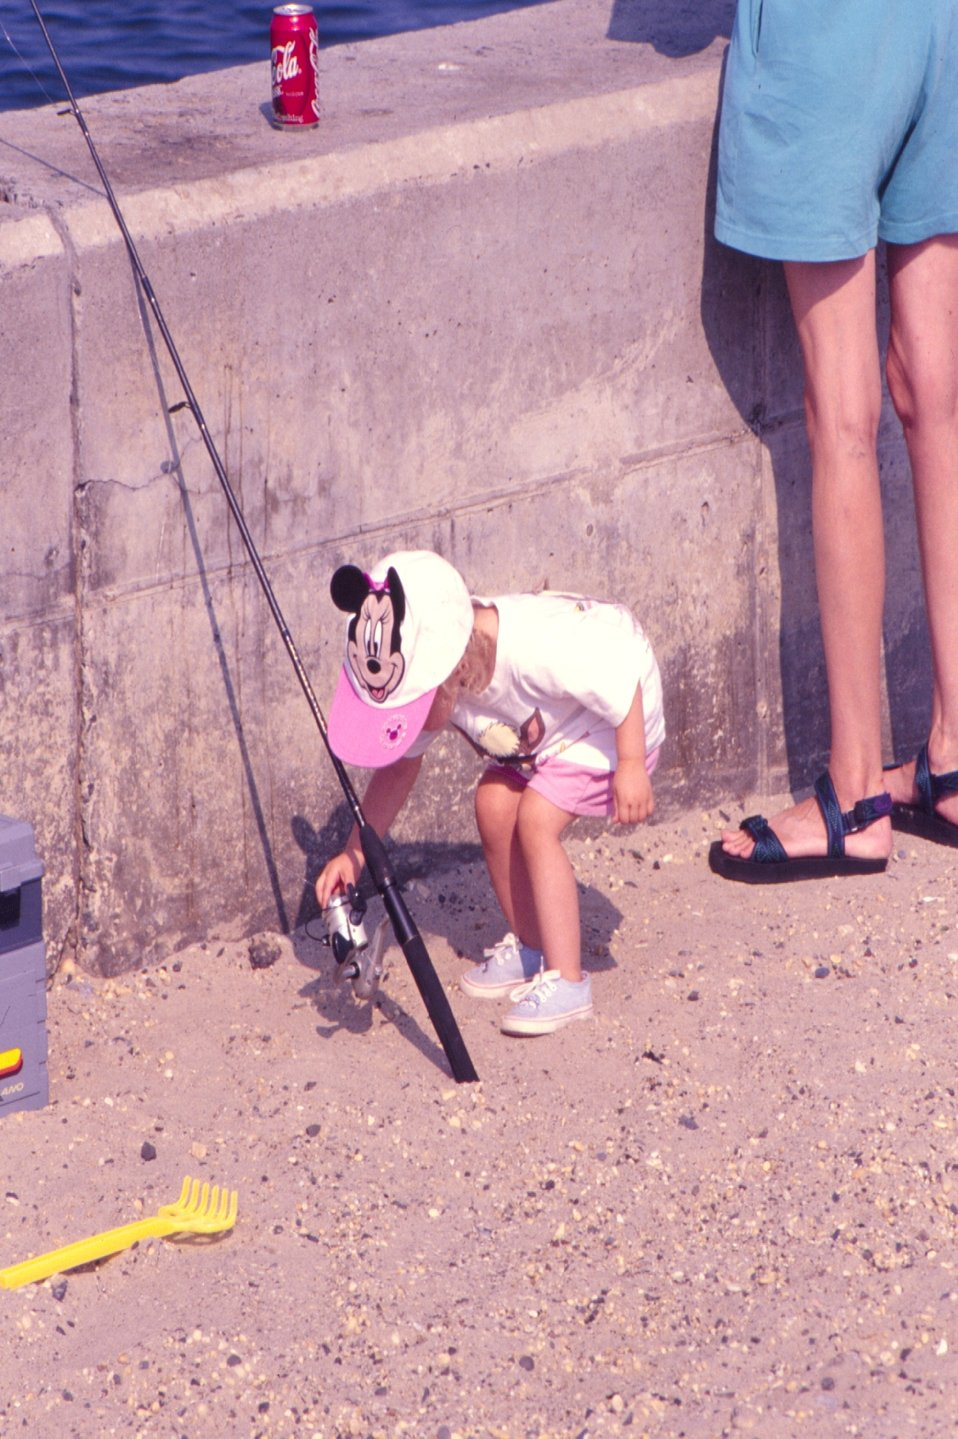 A youthful angling enthusiast checks out the action on her spinning reel. Point Pleasant, NJ.